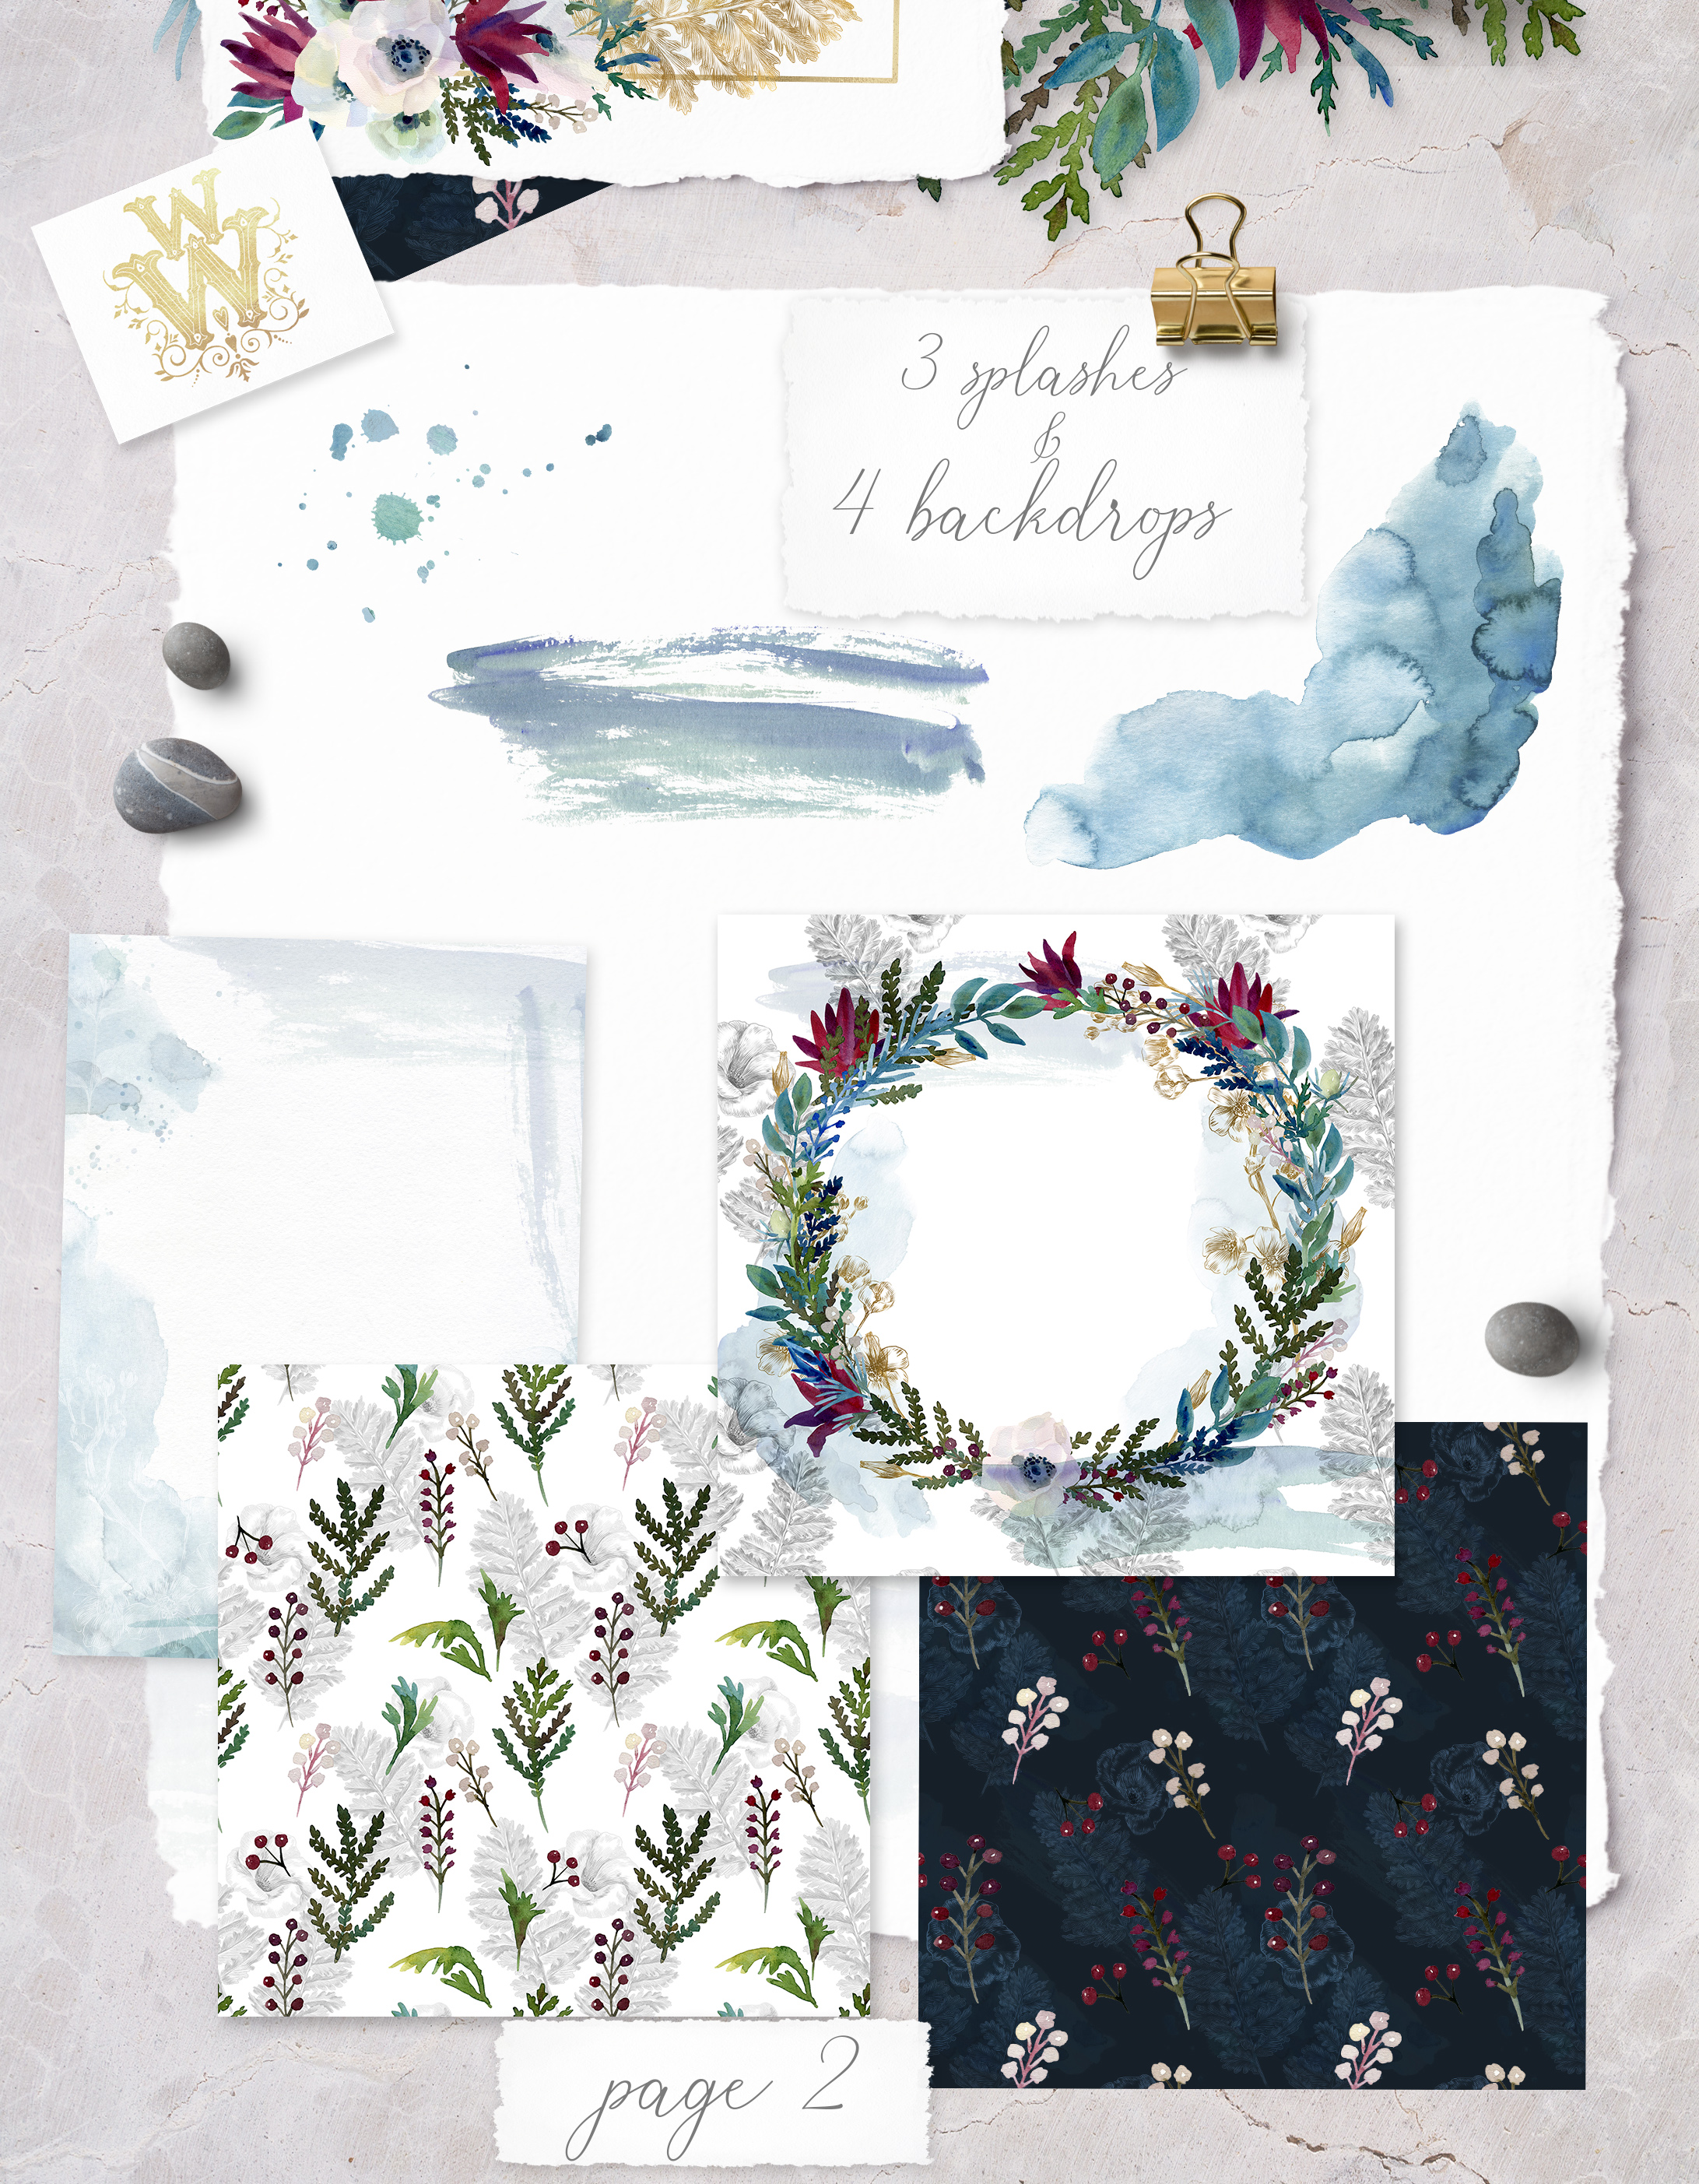 Watercolor white flowers frame, wedding wreath invitation example image 3